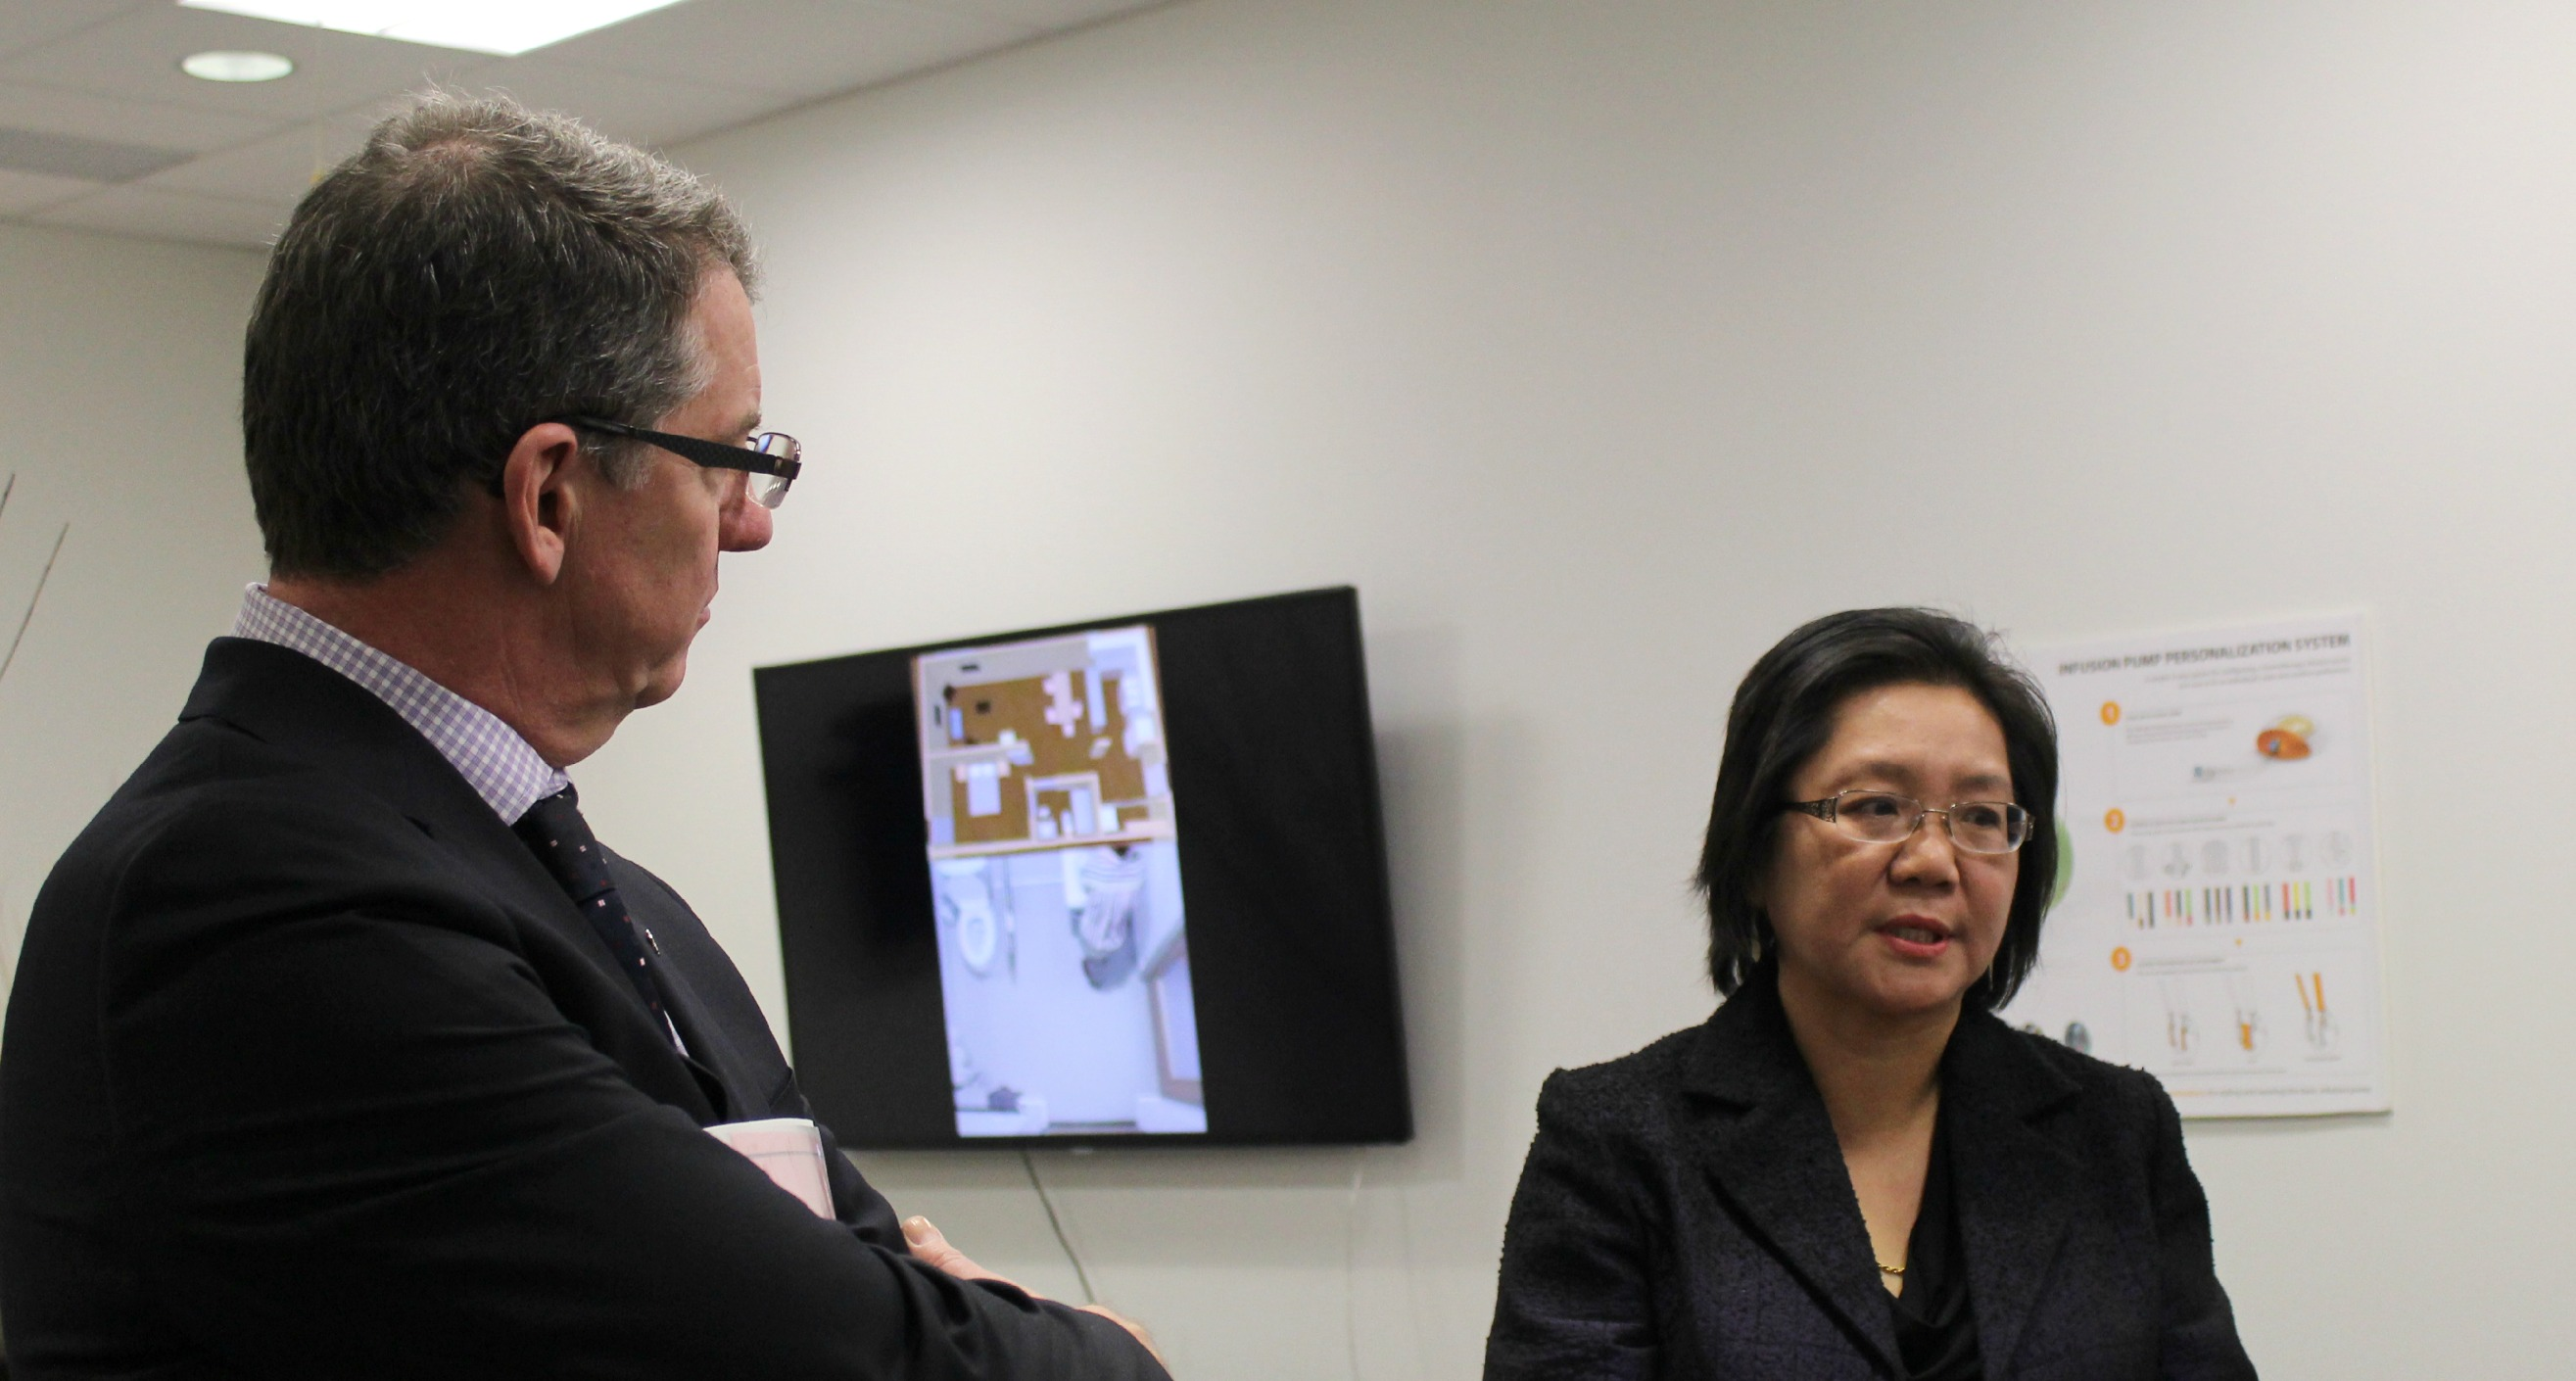 President David Turpin and Dr. Lili Liu, Chair, Occupational Therapy, co-academic lead for the Smart Condo